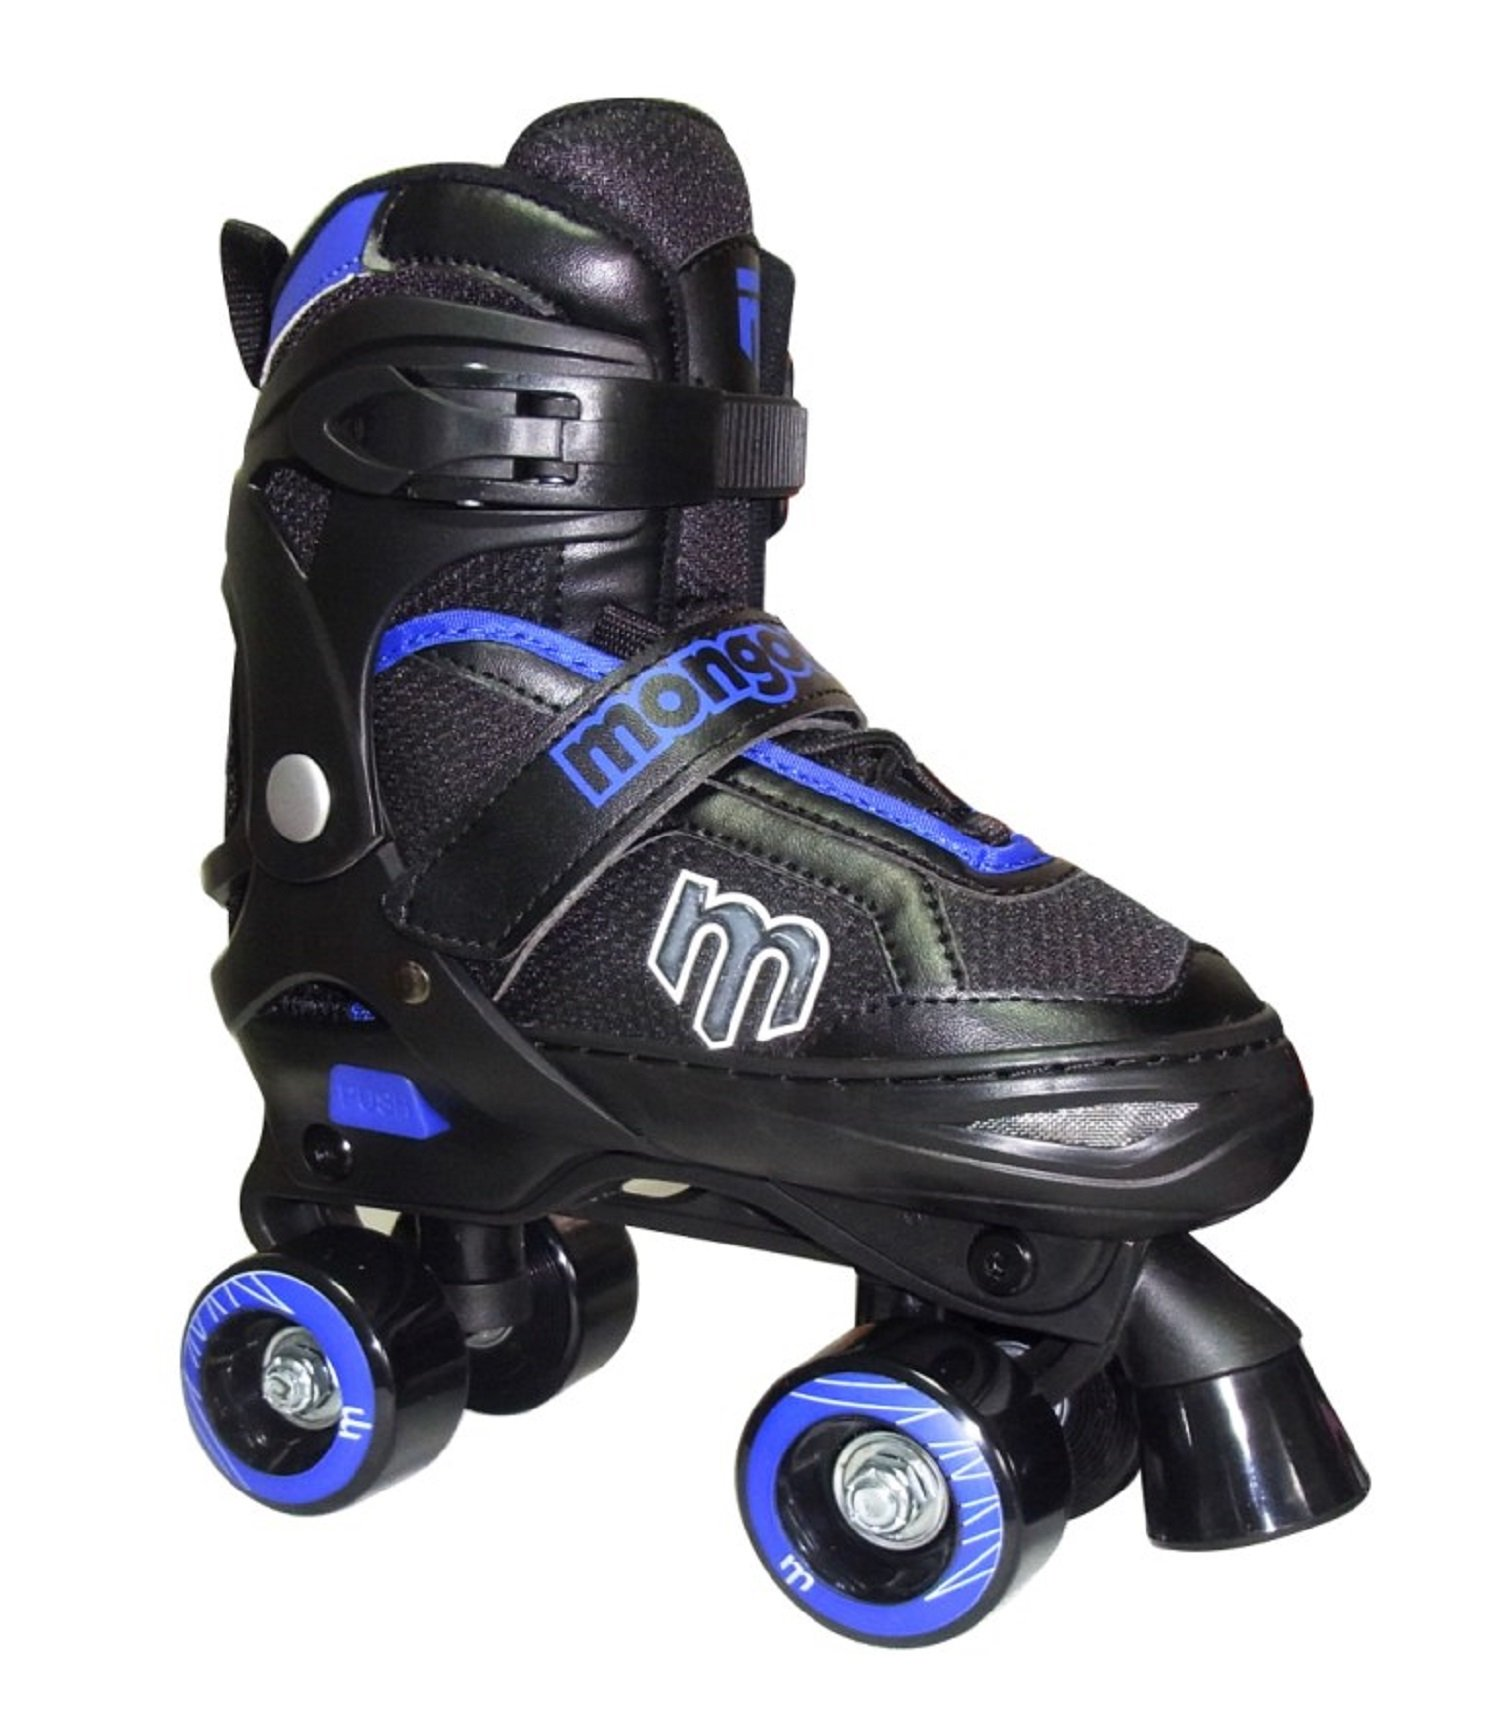 Mongoose Adjustable Quad Roller Skate- Blue and Black- Sizes 1-4